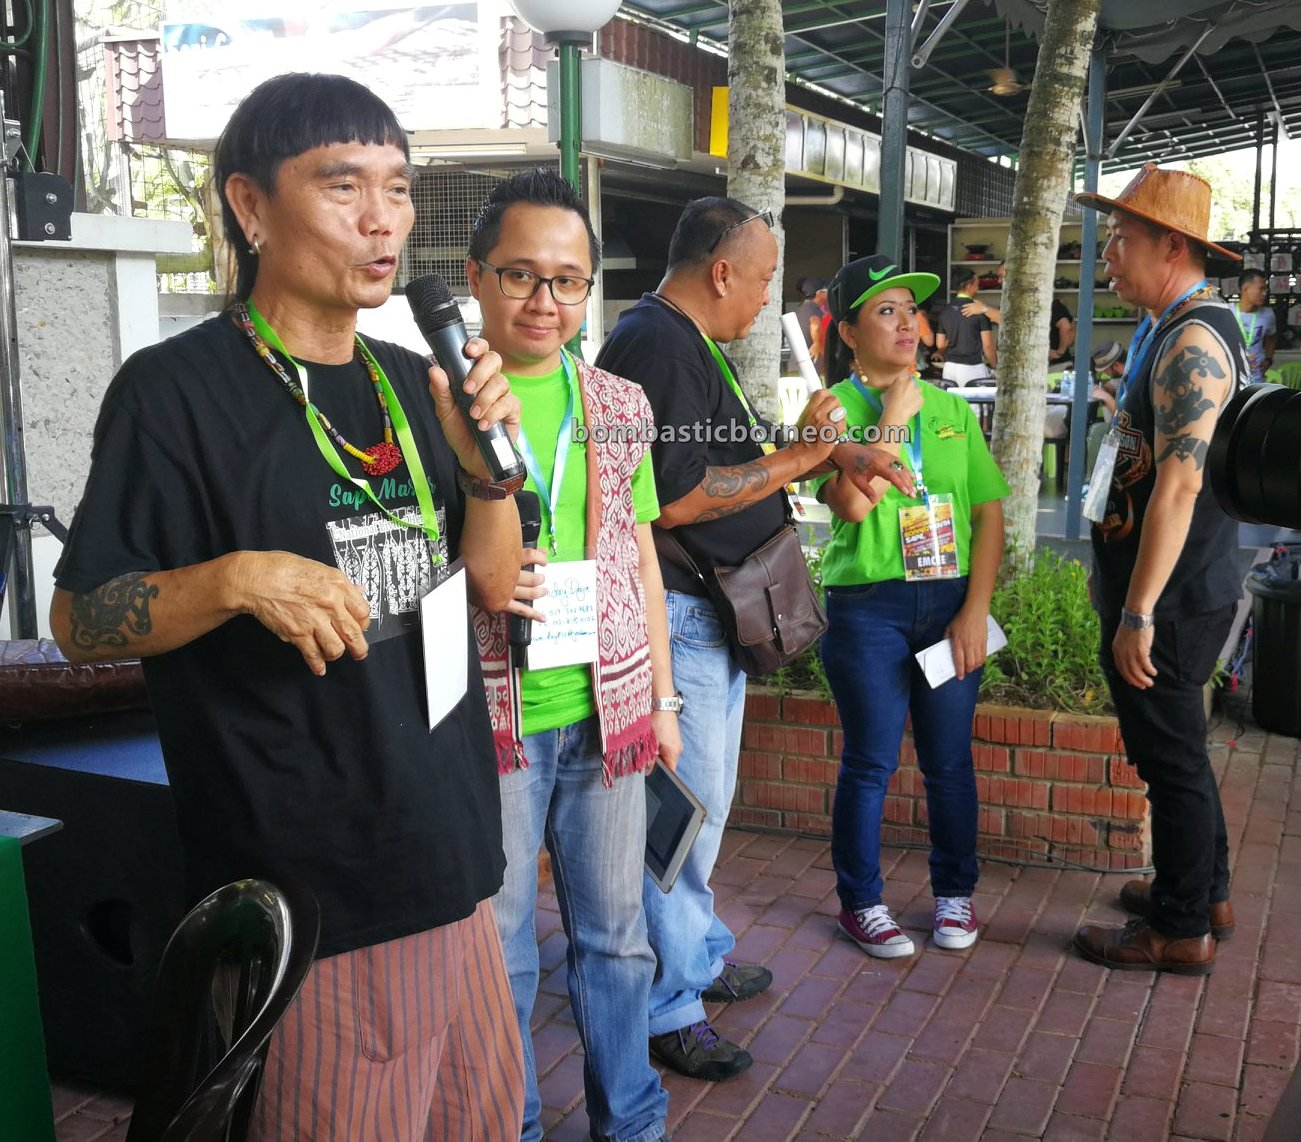 authentic, backpackers, culture, event, native, tribe, tribal, musical instrument, Sibu, Sarawak, Malaysia, Tourism, tourist attraction, travel guide, 诗巫砂拉越马来西亚,